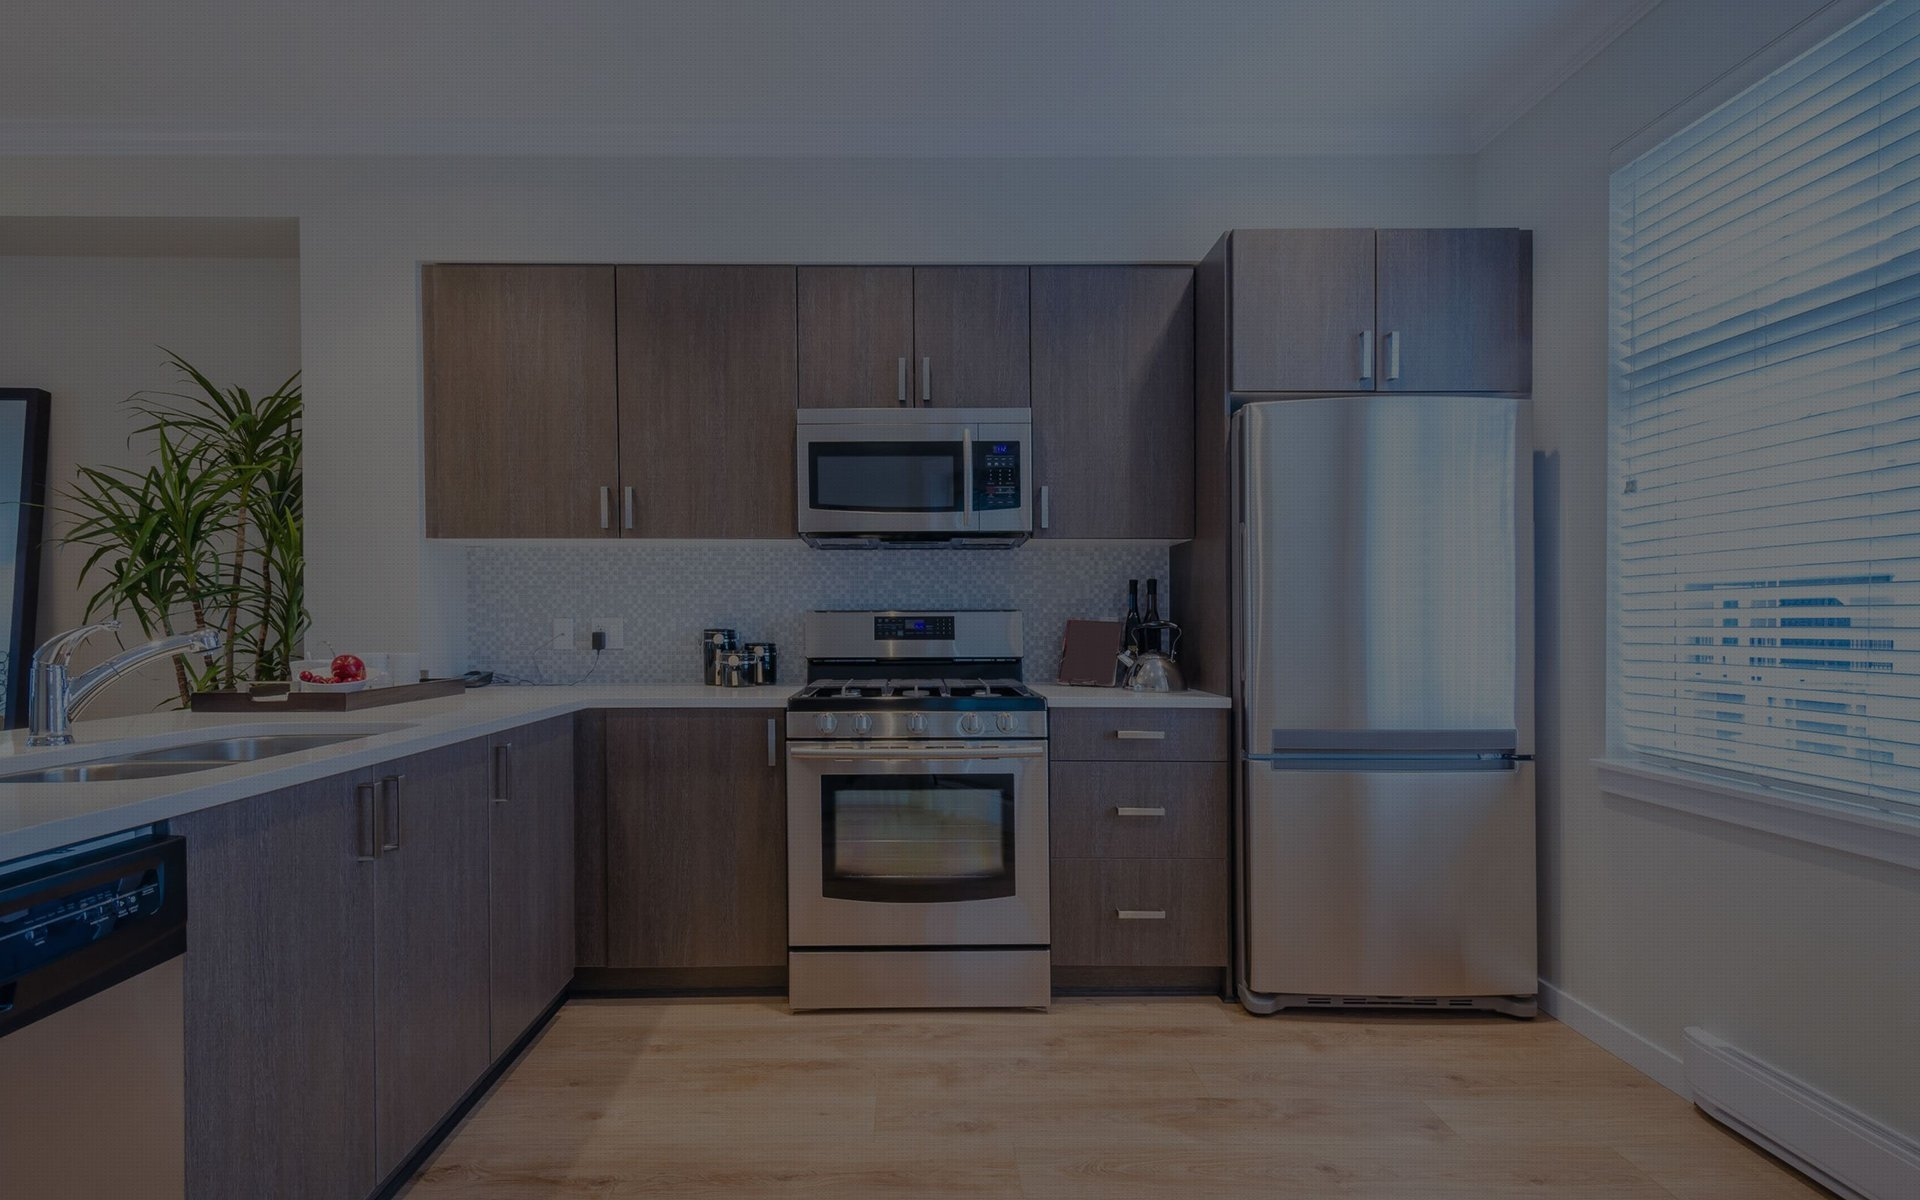 danny s appliance service llc appliance repair blog posts in new